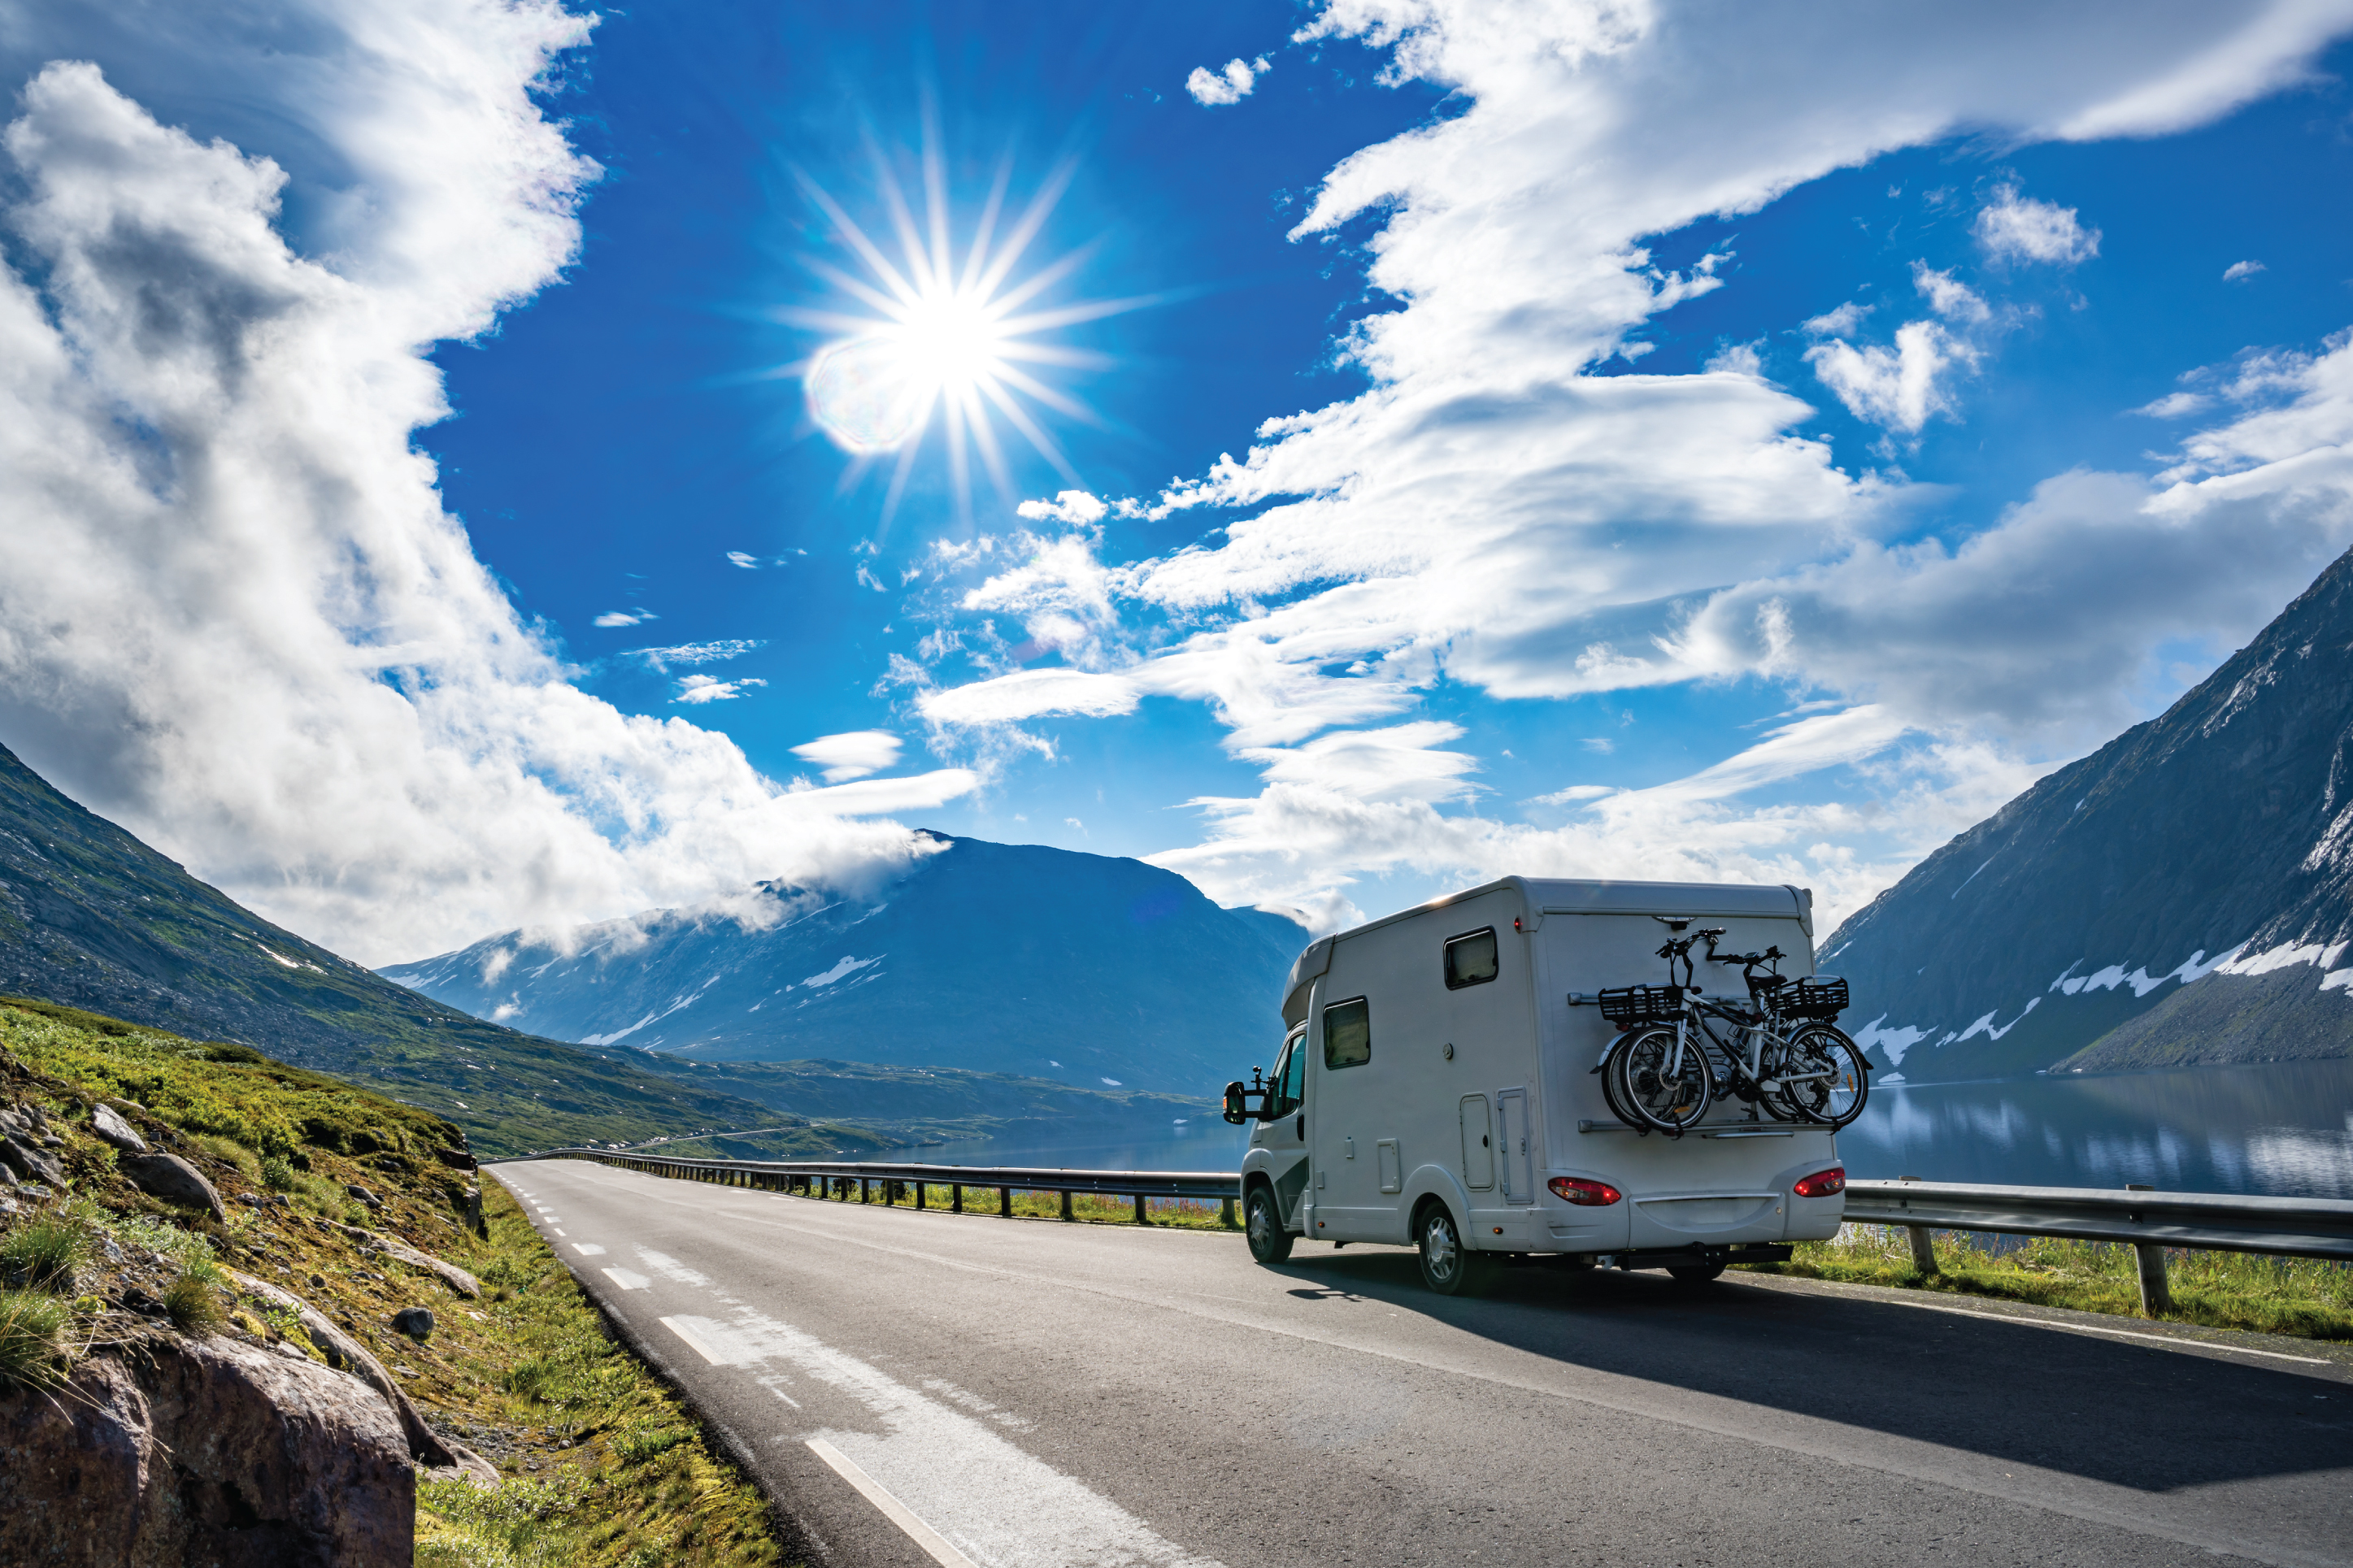 How to Get the Best Value When Buying an RV